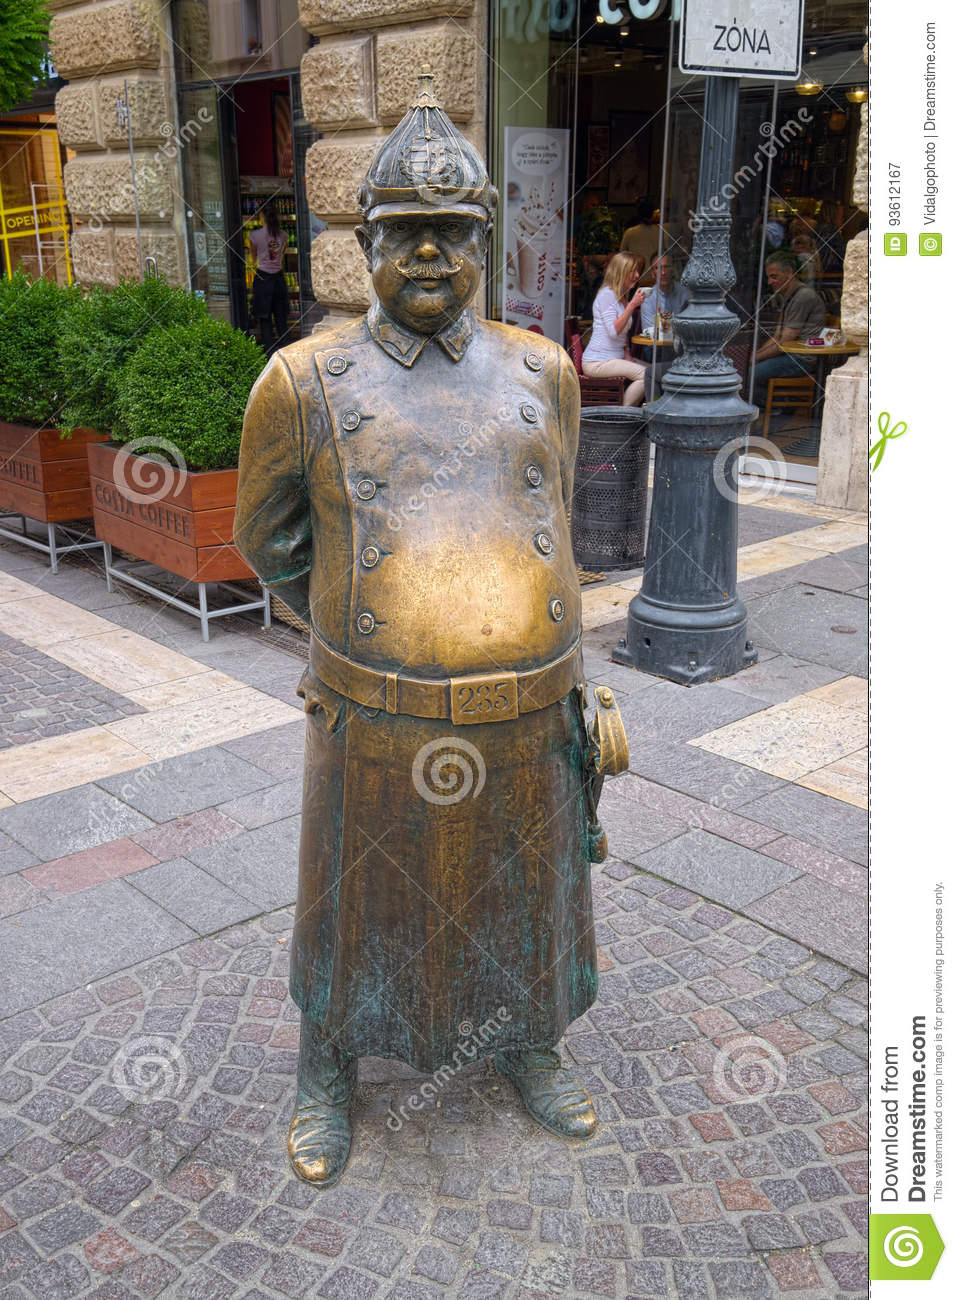 The Fat Policeman Statue in Budapest, Hungary